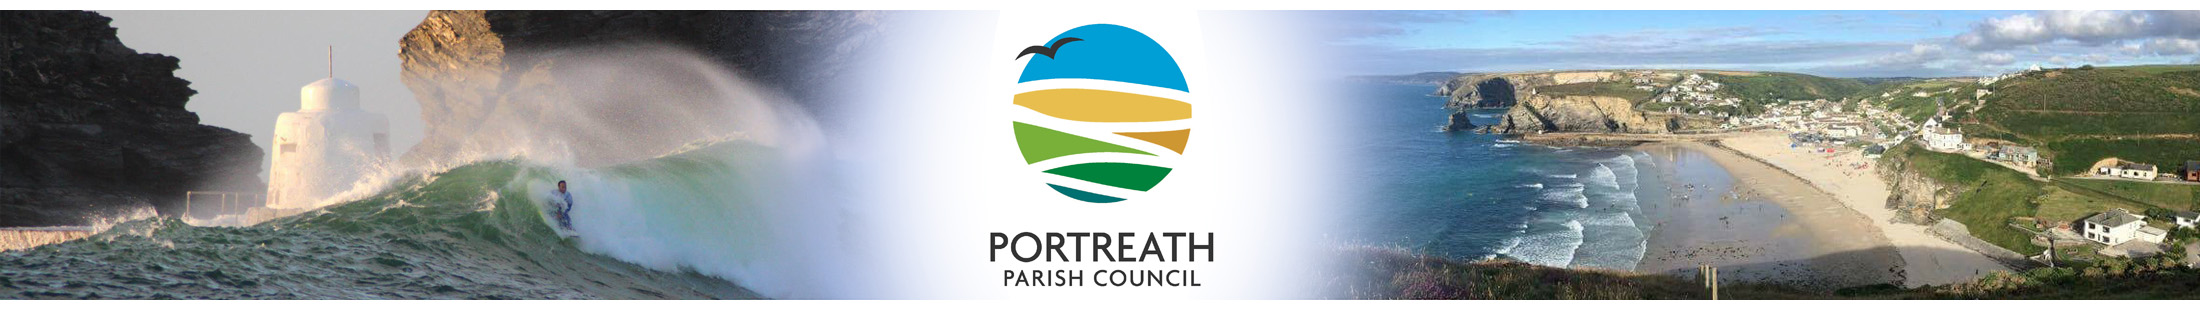 Header Image for Portreath Parish Council